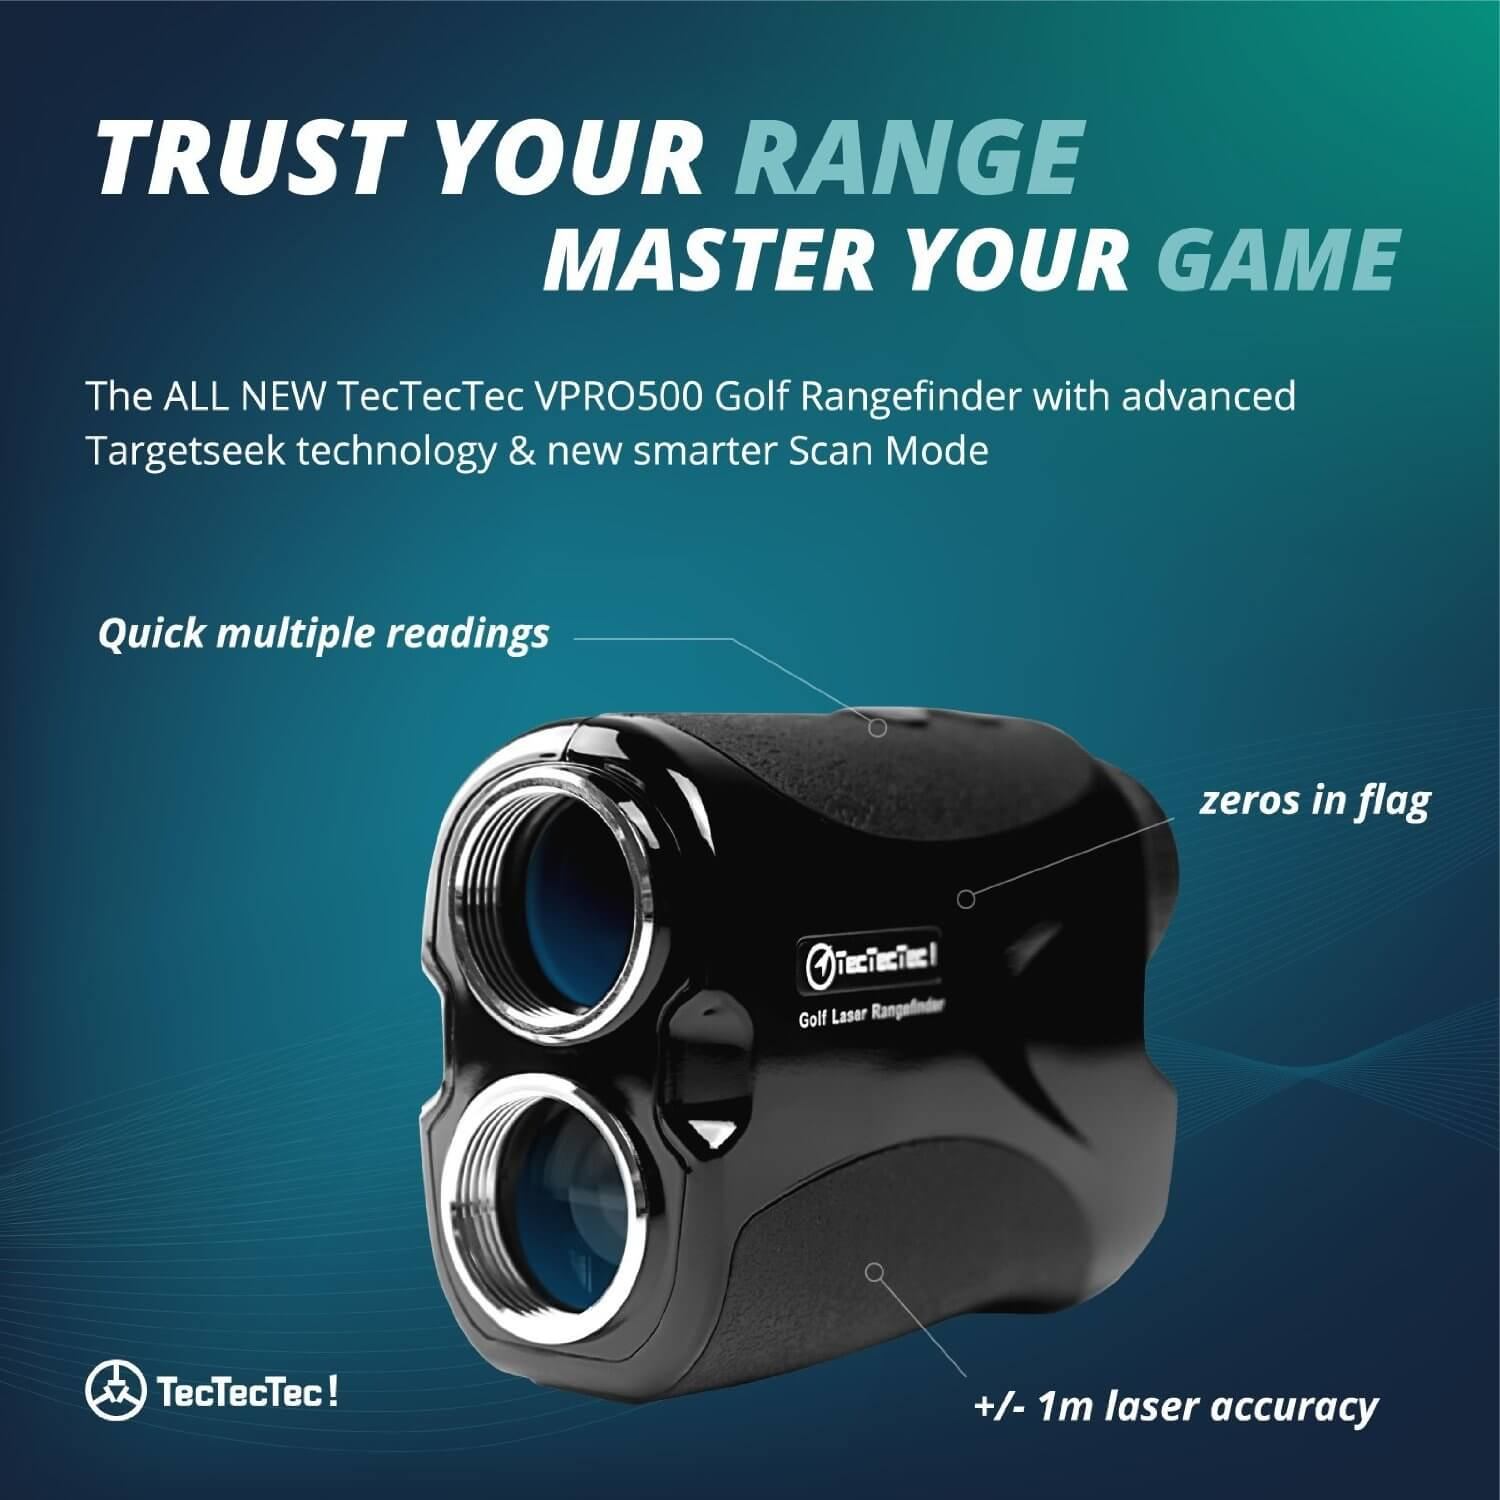 TecTecTec Trust Your Range Master Your Game VPRO500 Rangefinder Technology